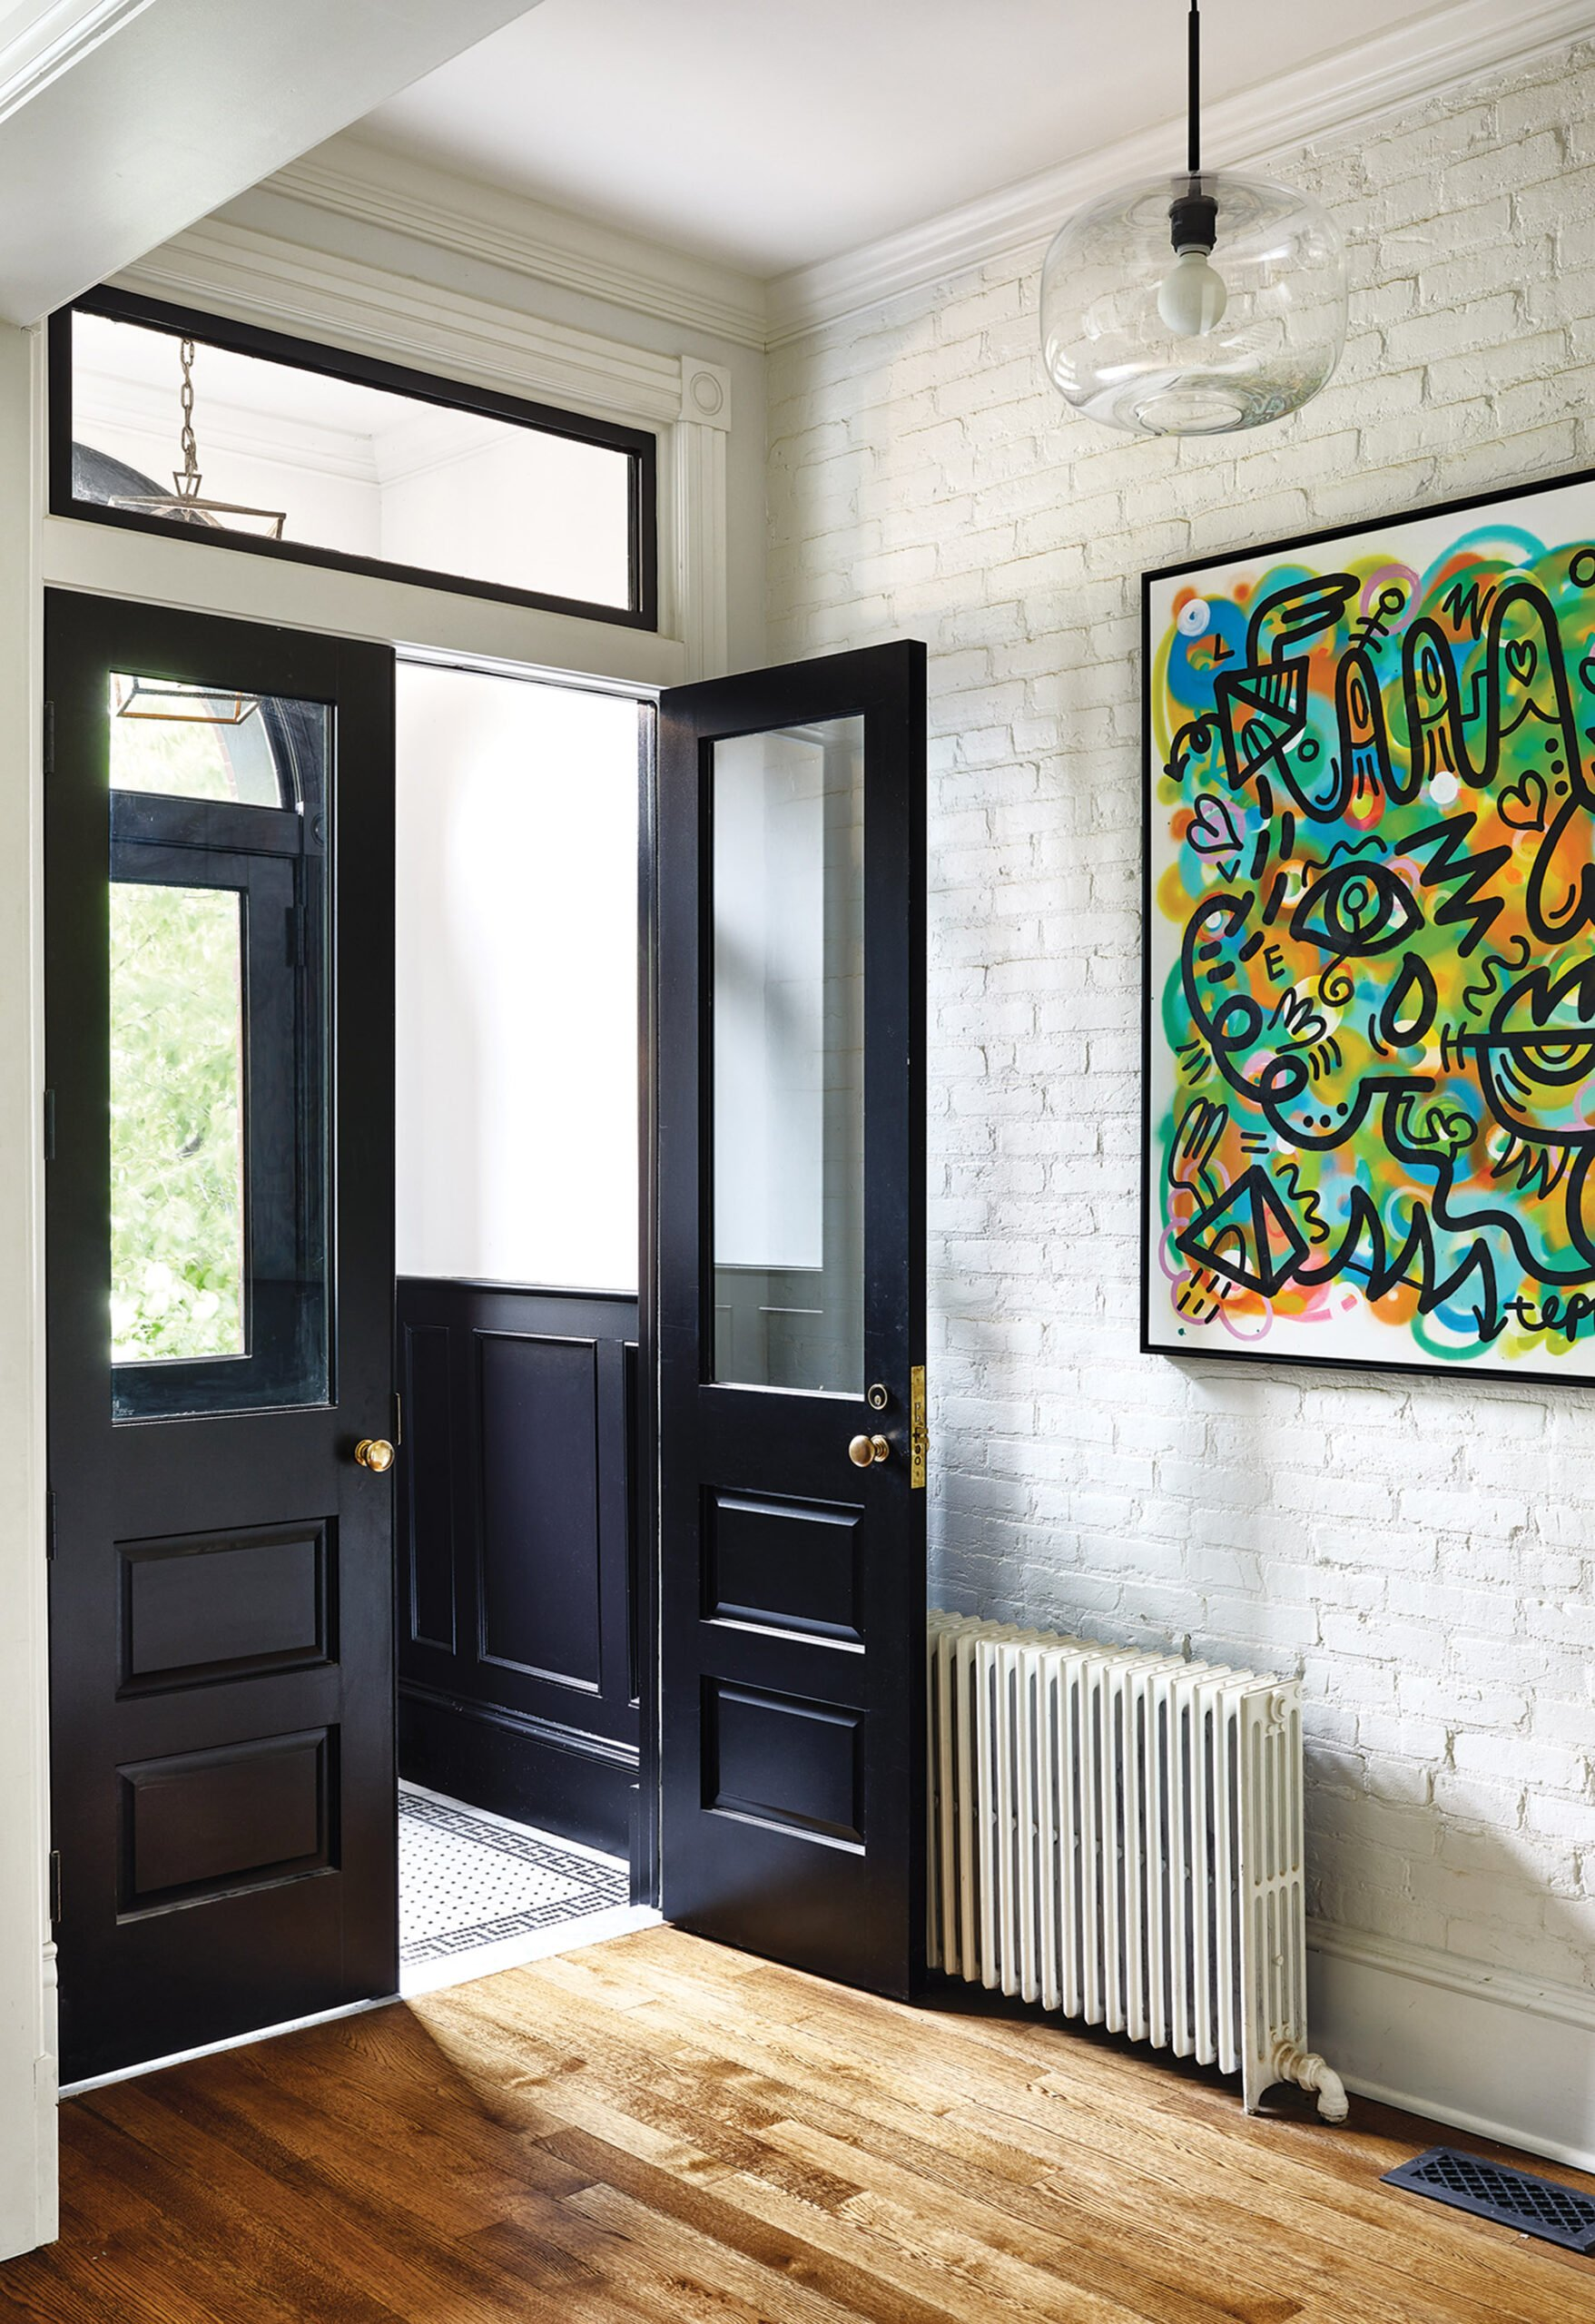 Exposed-brick wall painted white with clear-glass doors in a vestibule.